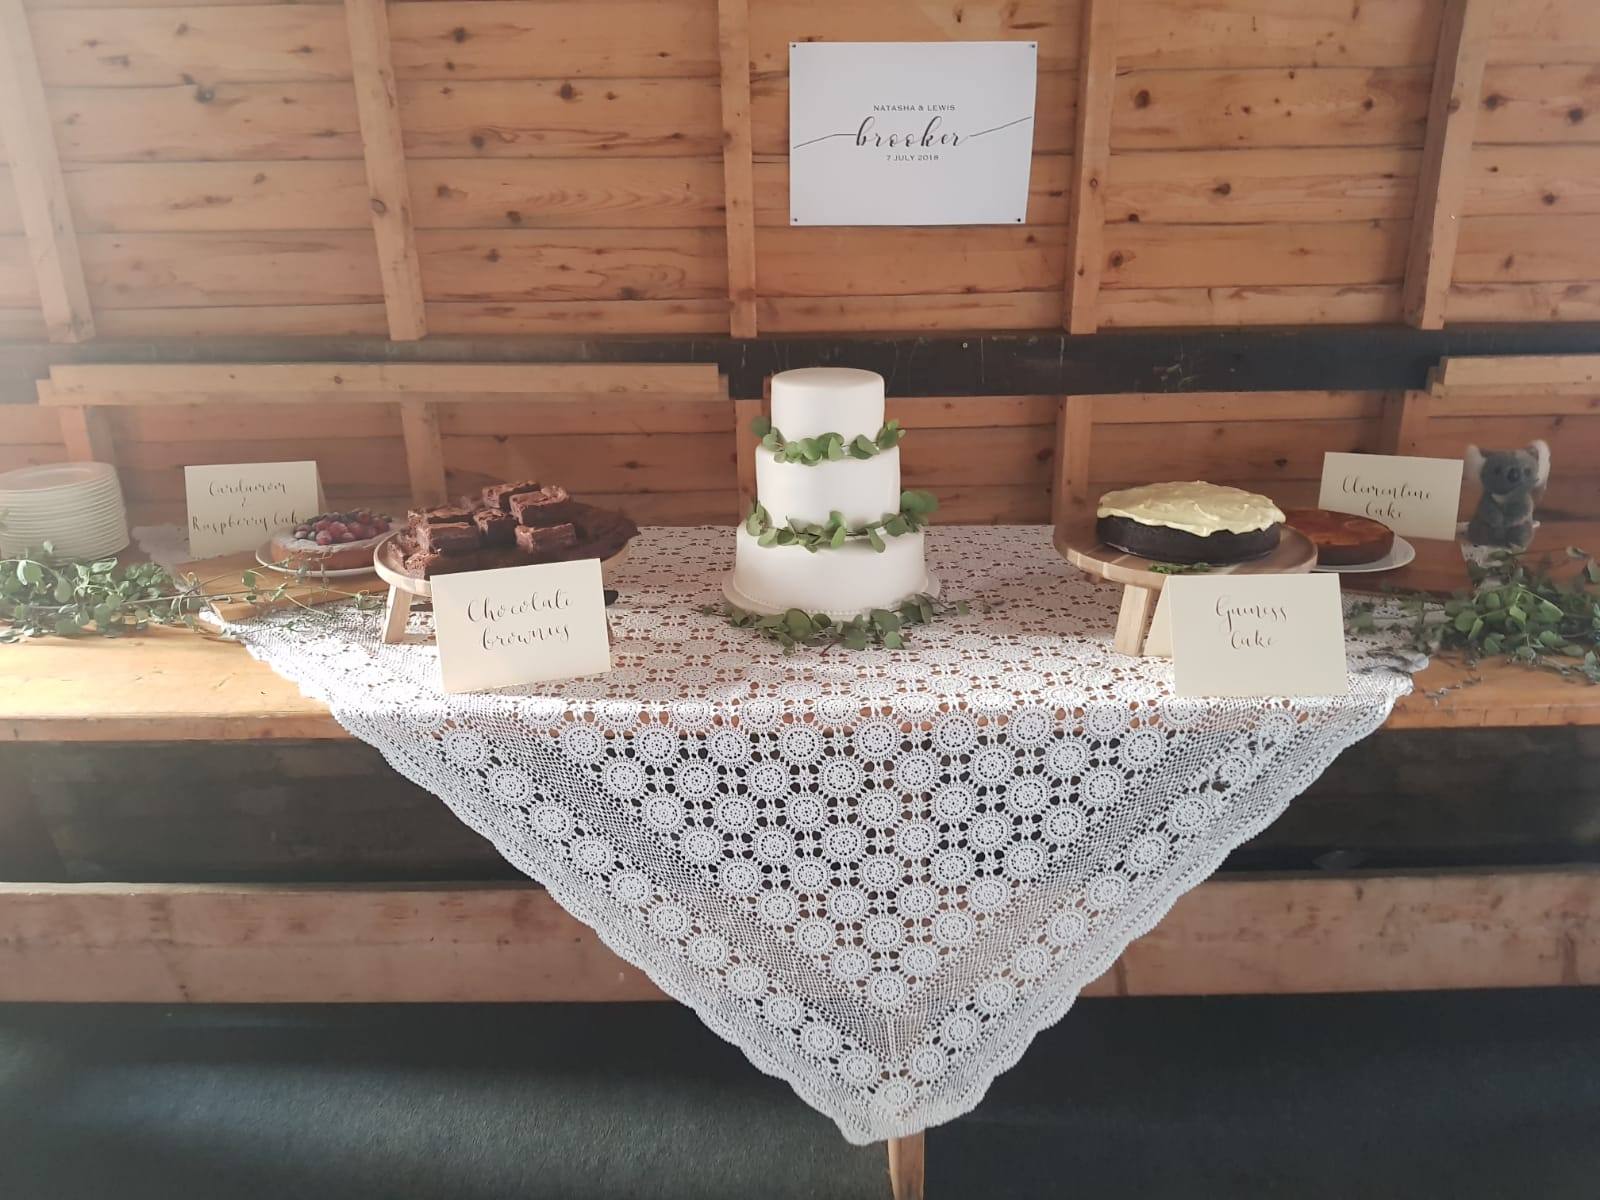 Signage for weddings - We loved doing these simple and rustic signs for a country chic wedding. Making the dessert table look extra enticing! Check out our wedding and events page for more photos...